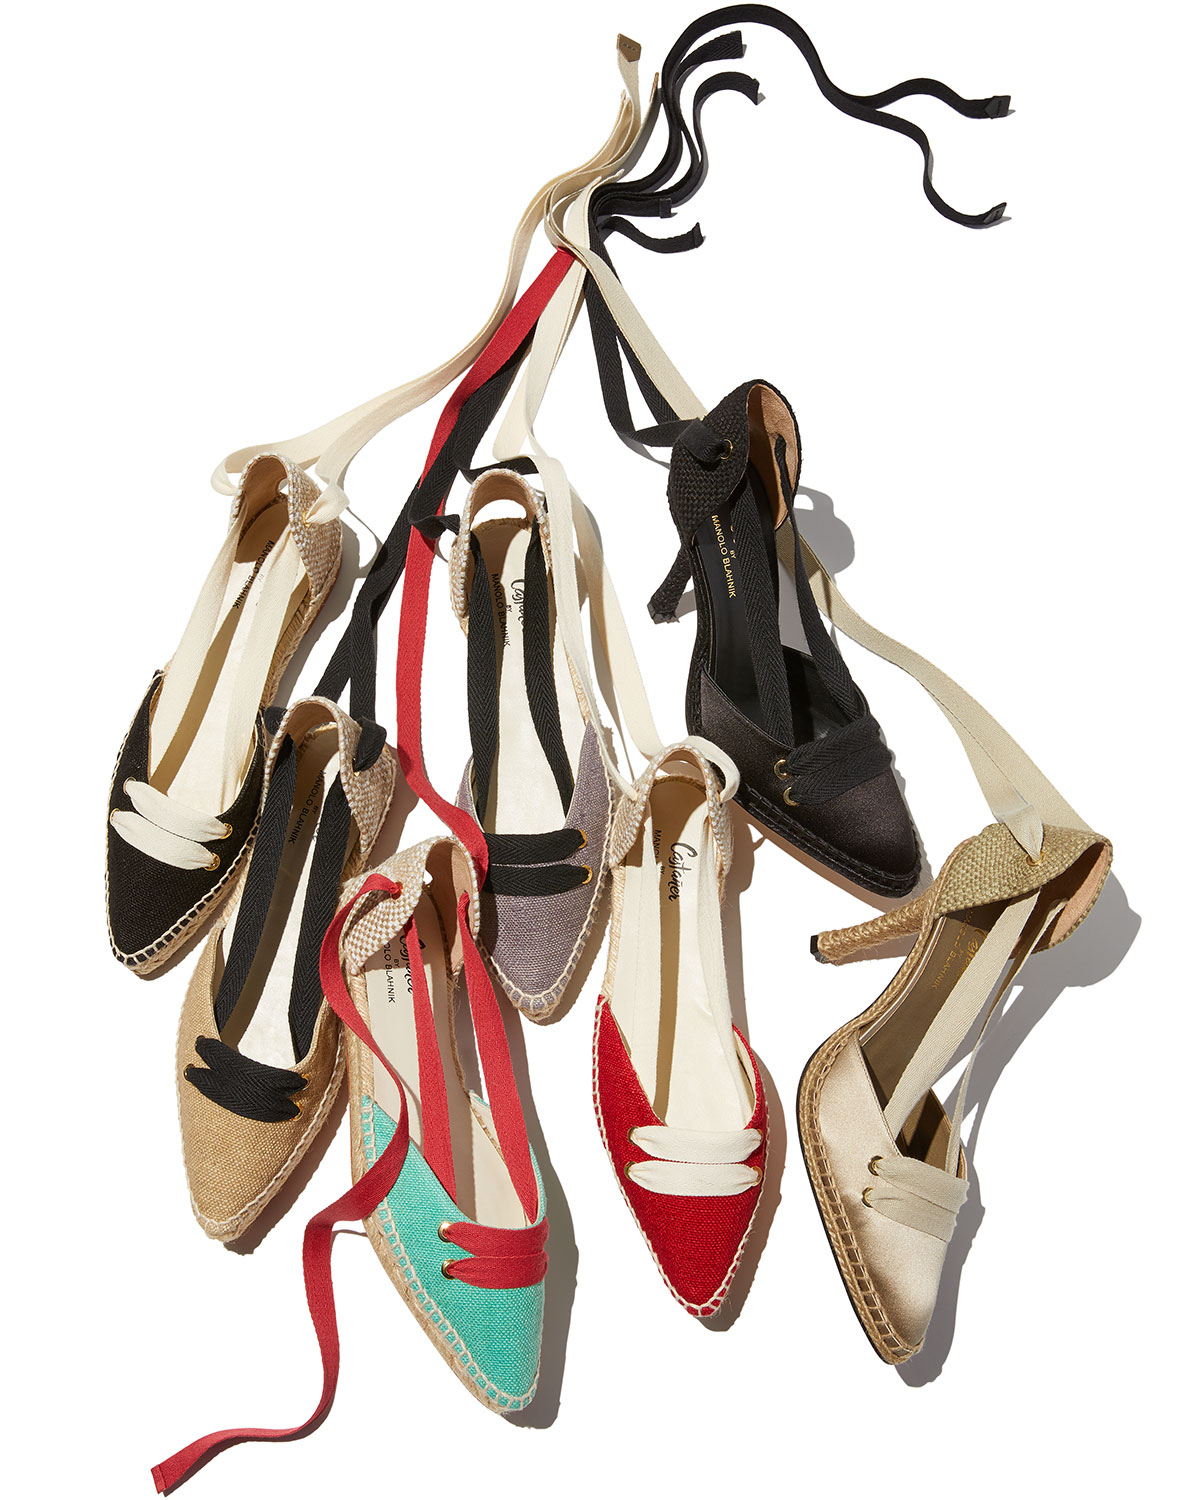 Shoe salon designer shoe collection at bergdorf goodman - Bergdorf goodman shoe salon ...